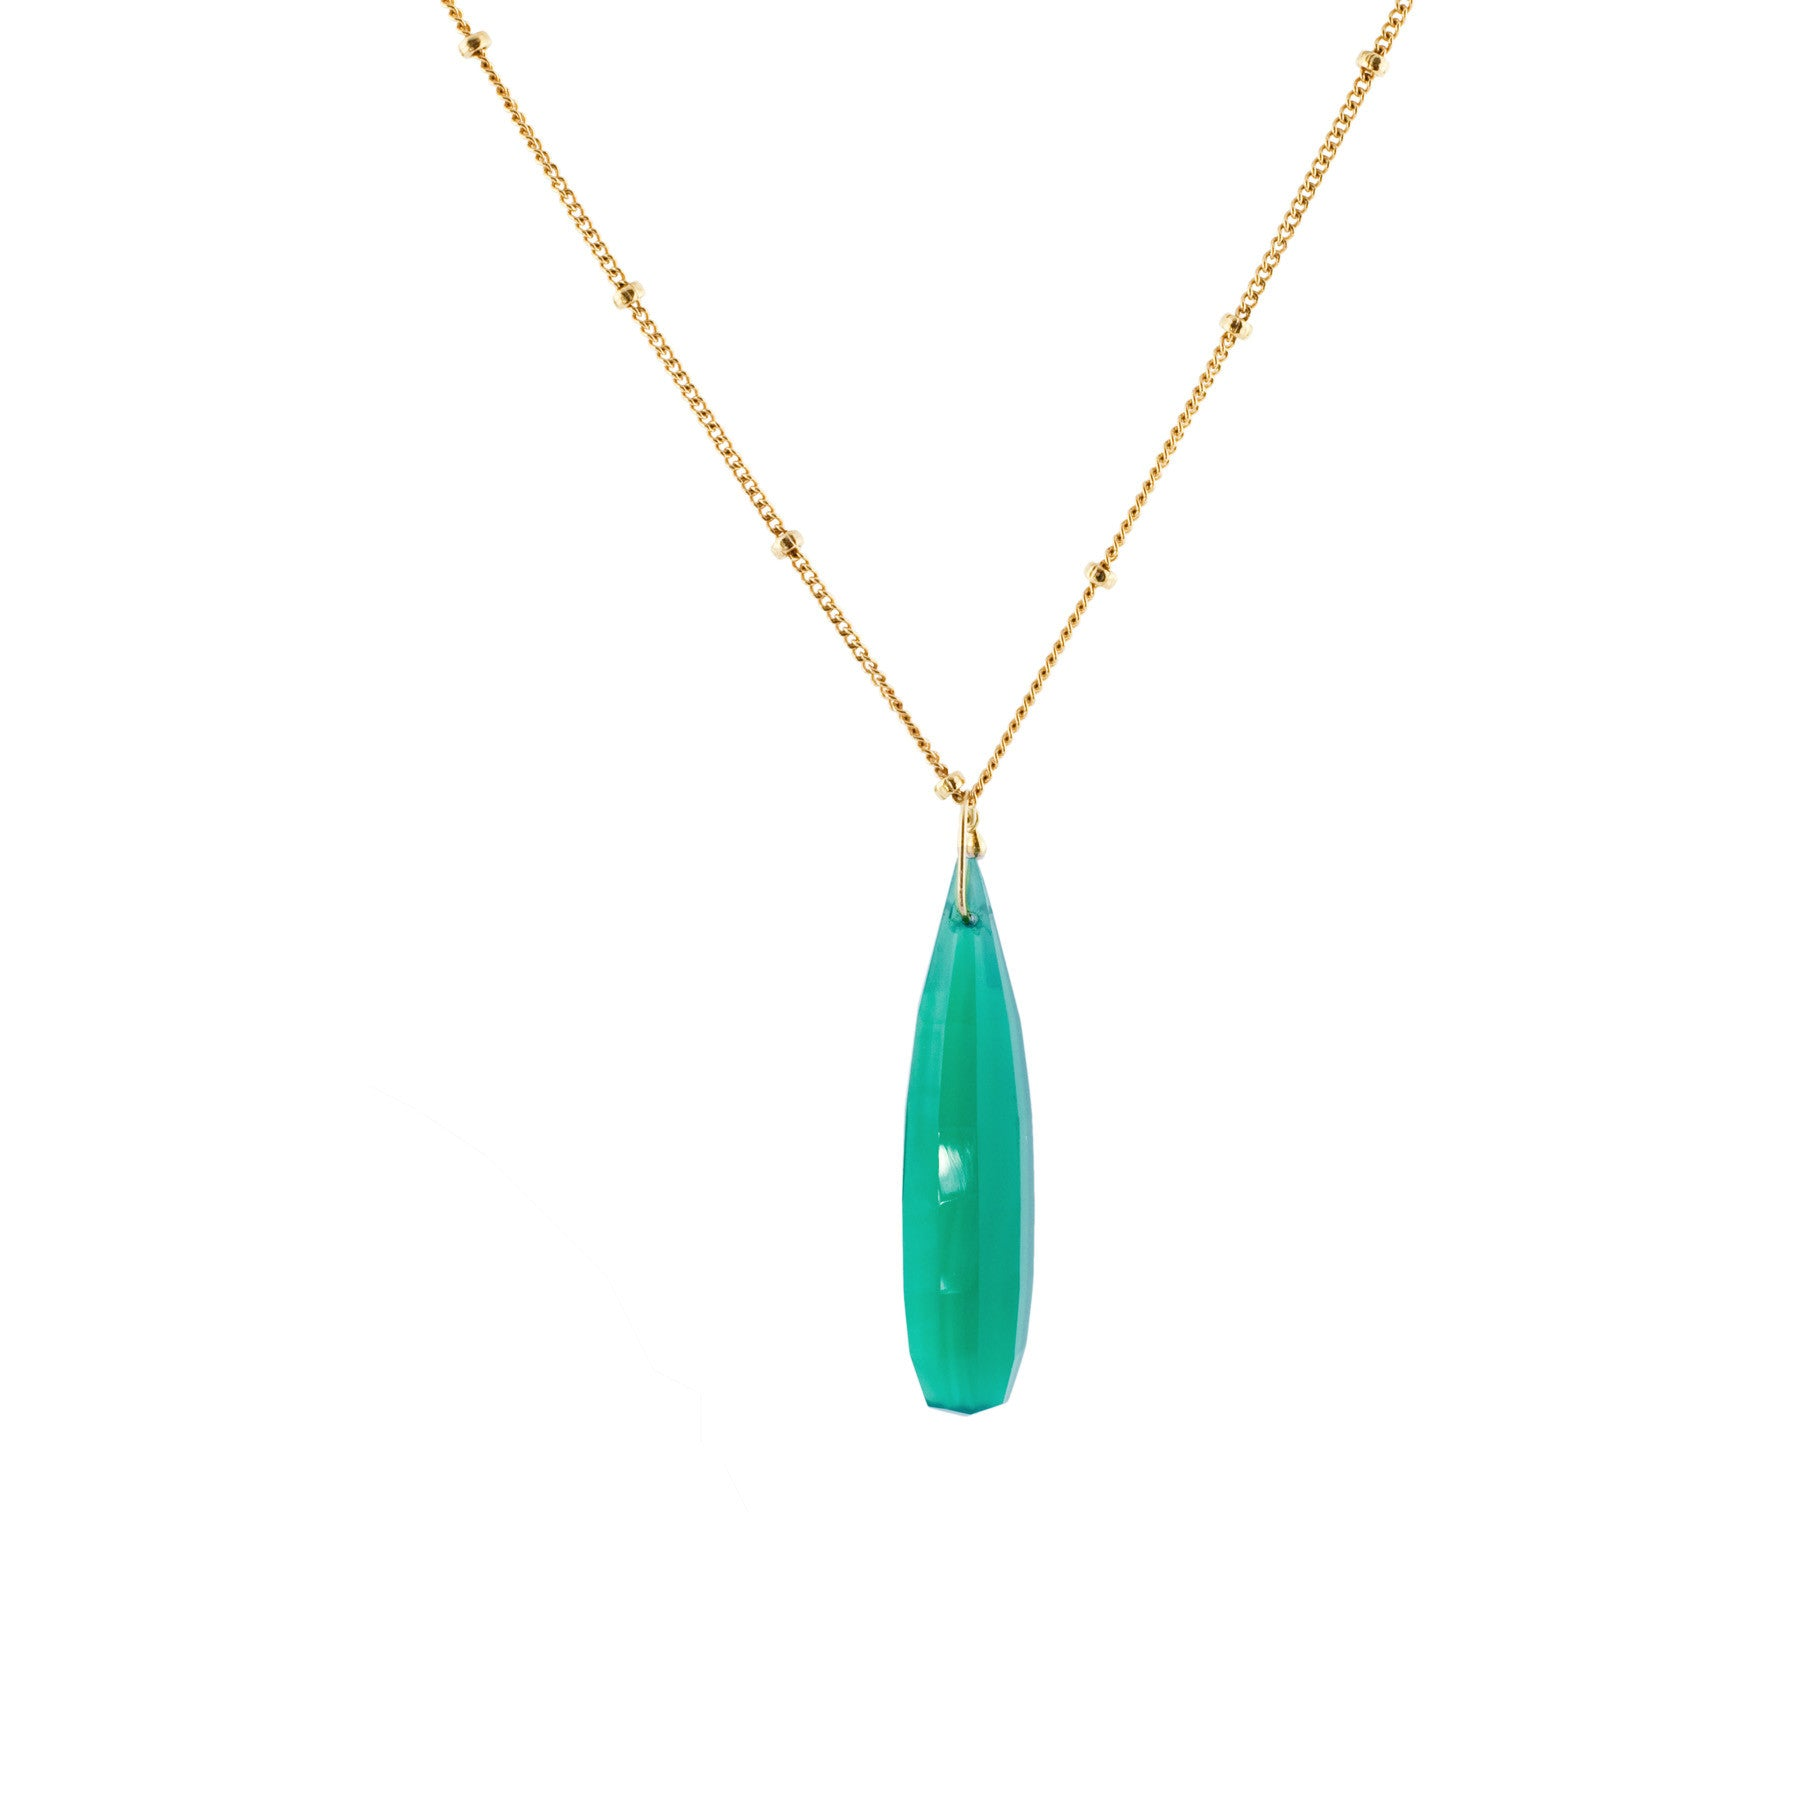 TEAL SATELLITE NECKLACE